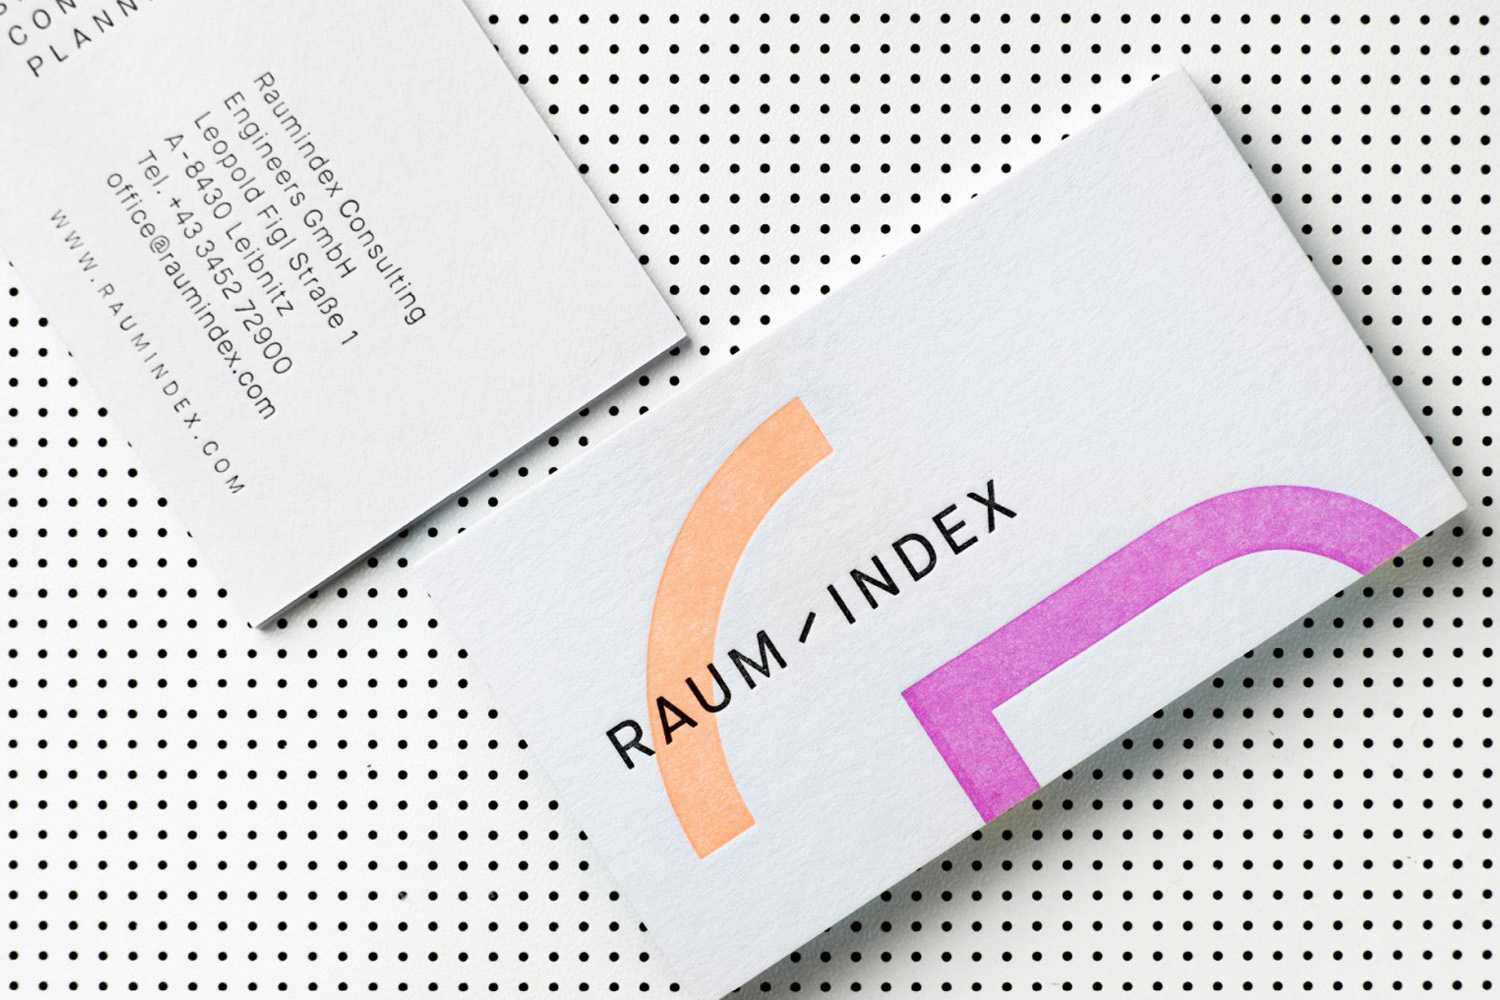 Brand identity and business cards by Graz and Wien-based Moodley for Austrian shop design studio Raumindex